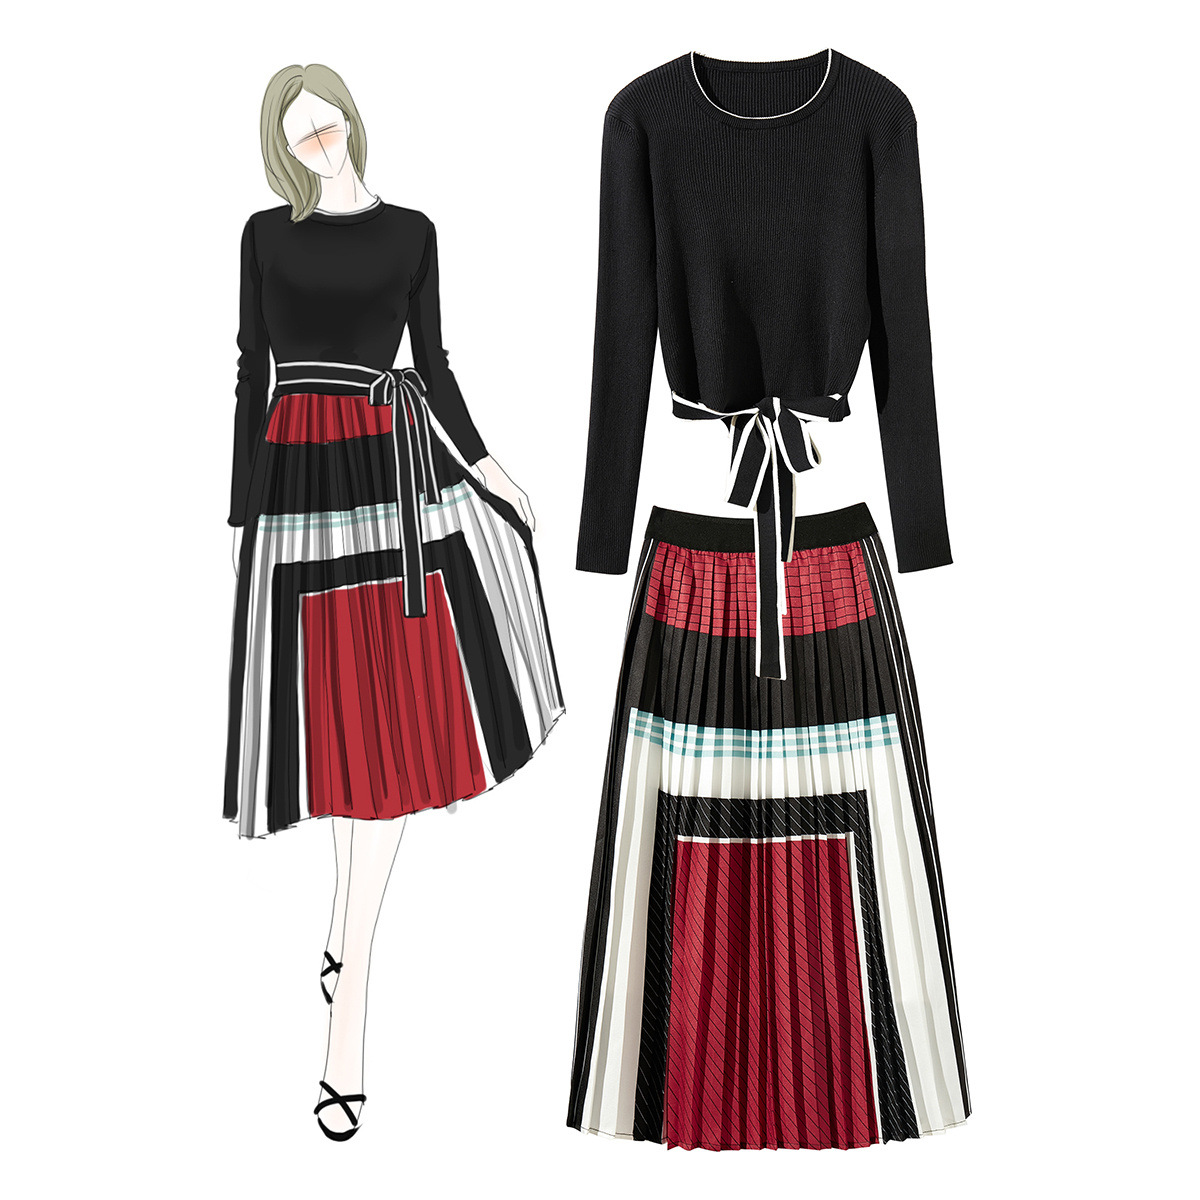 Modis Streetwear Autumn Winter Casual Two Piece Set Knitted Blouse with Bow and Pleated Print Skirt Women 2 Piece Set Plus Size